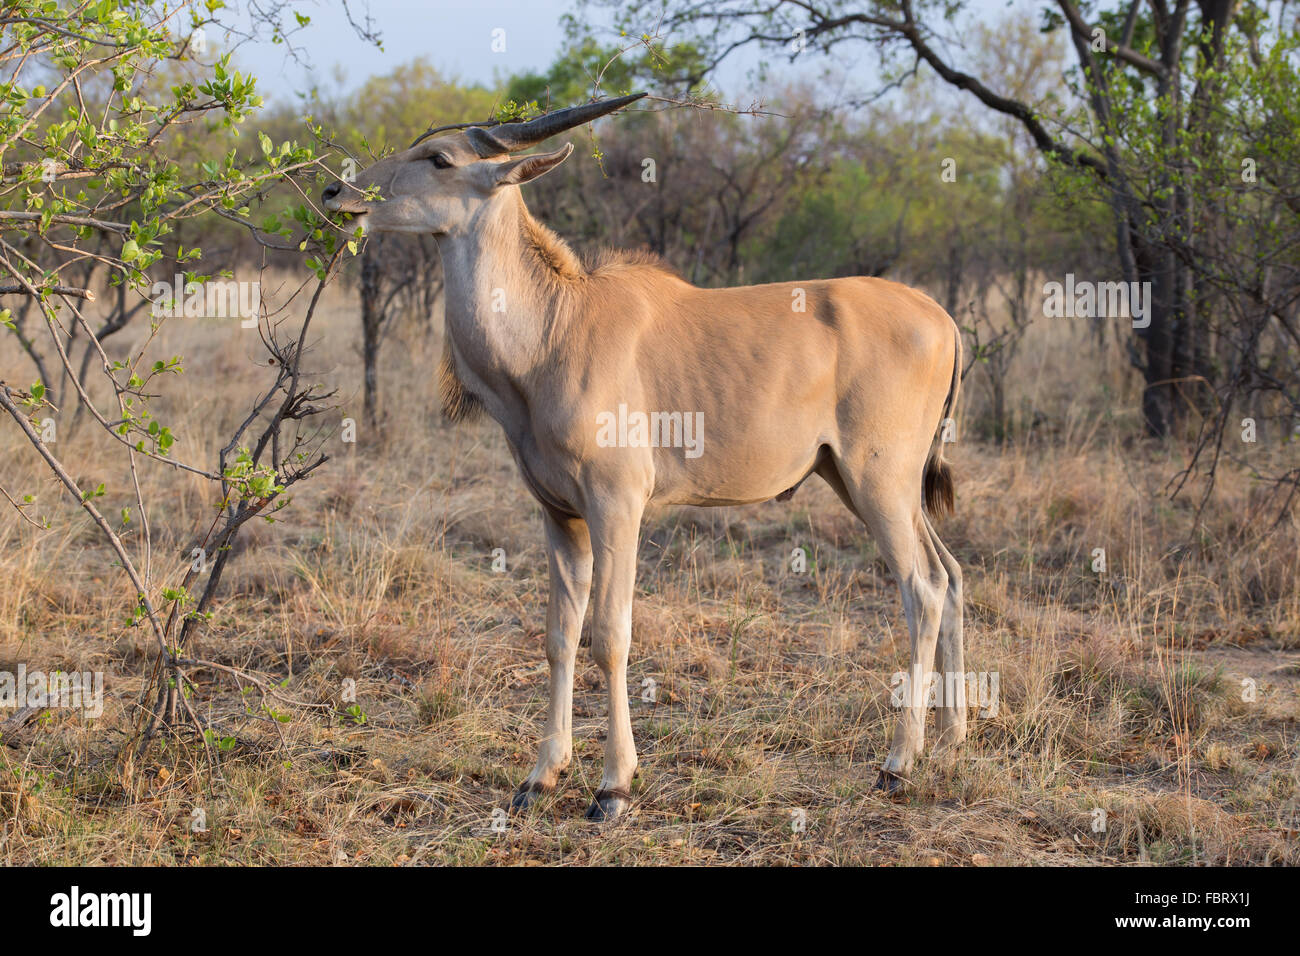 An Eland antelope eating leaves from a tree in the african bush - Stock Image